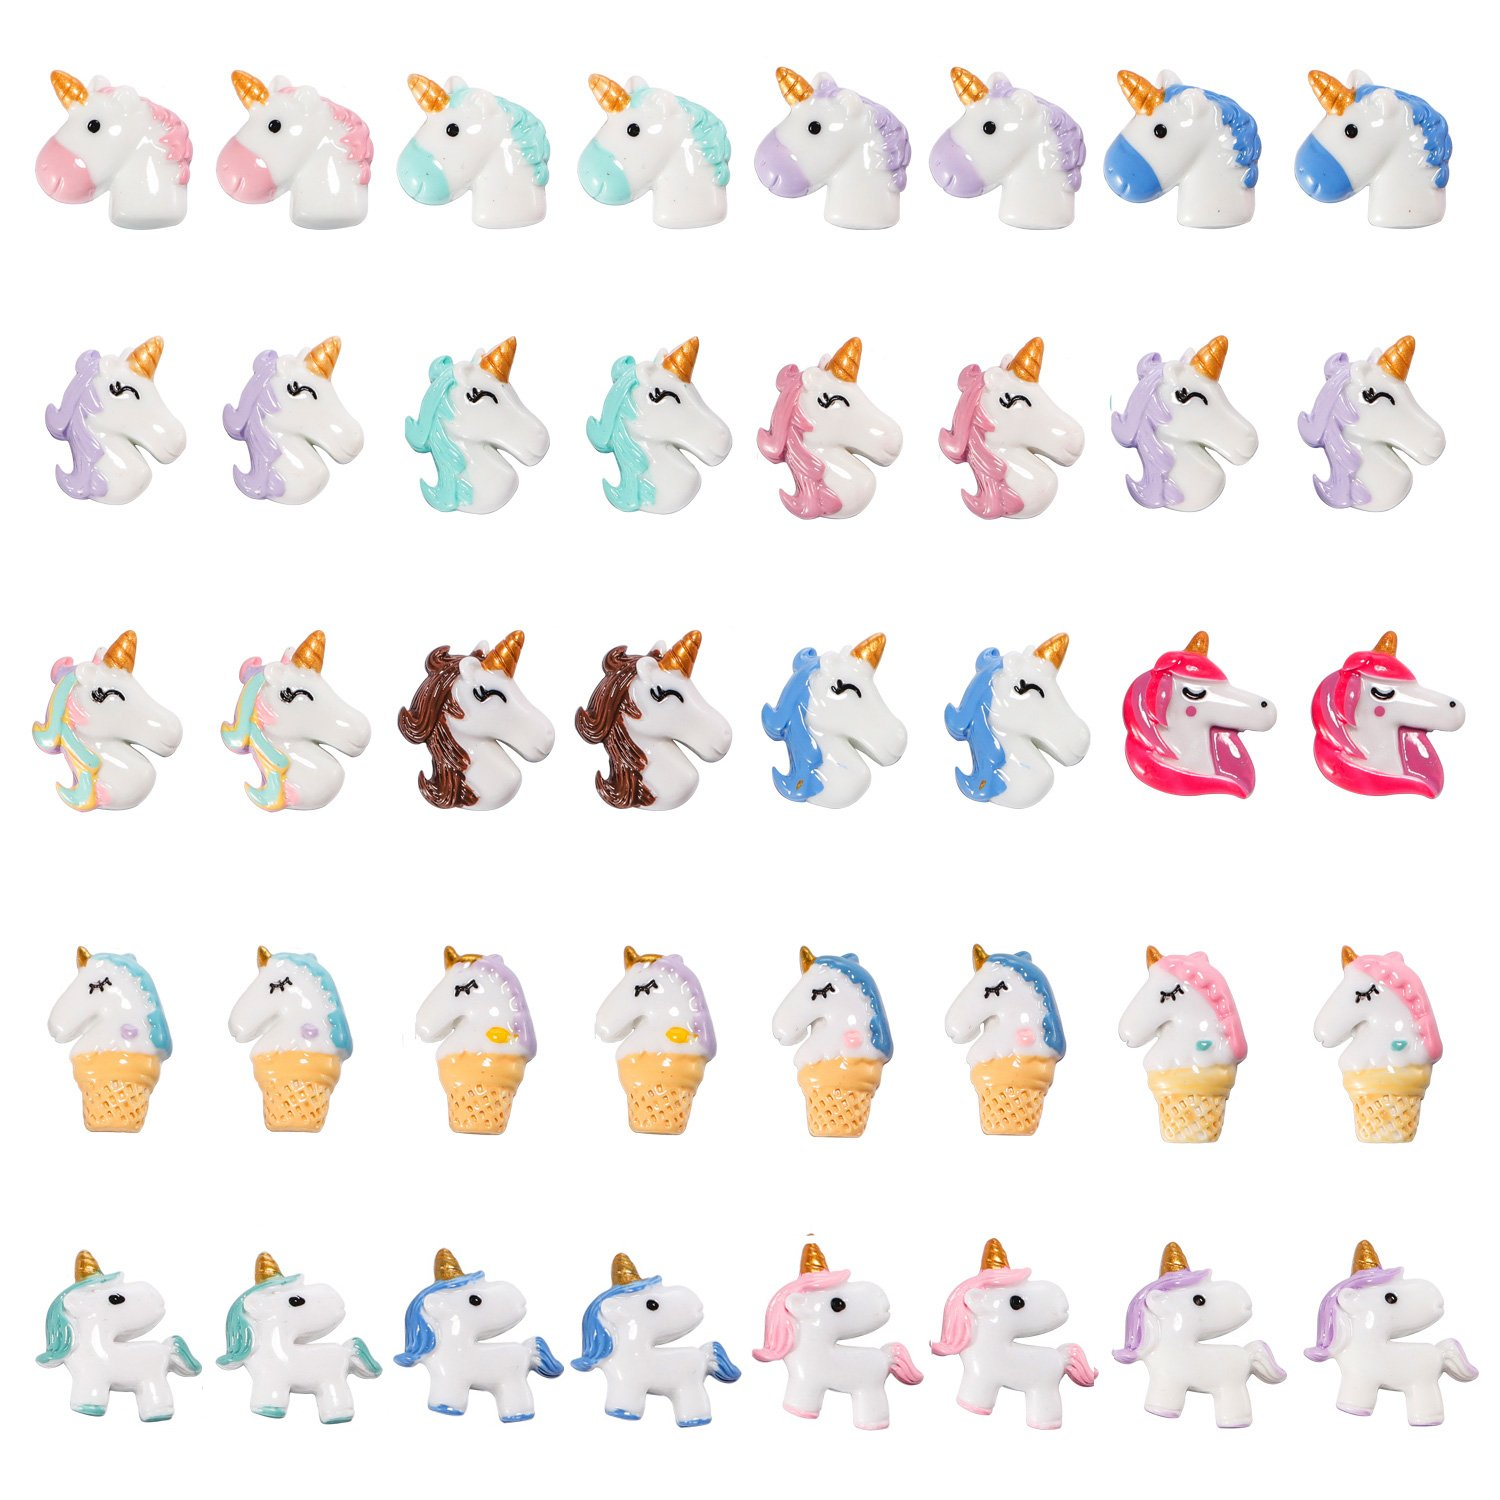 MAGICMAI 40 Pieces Unicorn Slime Charms Beads Cute Unicorn Charms Resin Ornaments Accessories for Handmade Crafe Making(20 Styles)